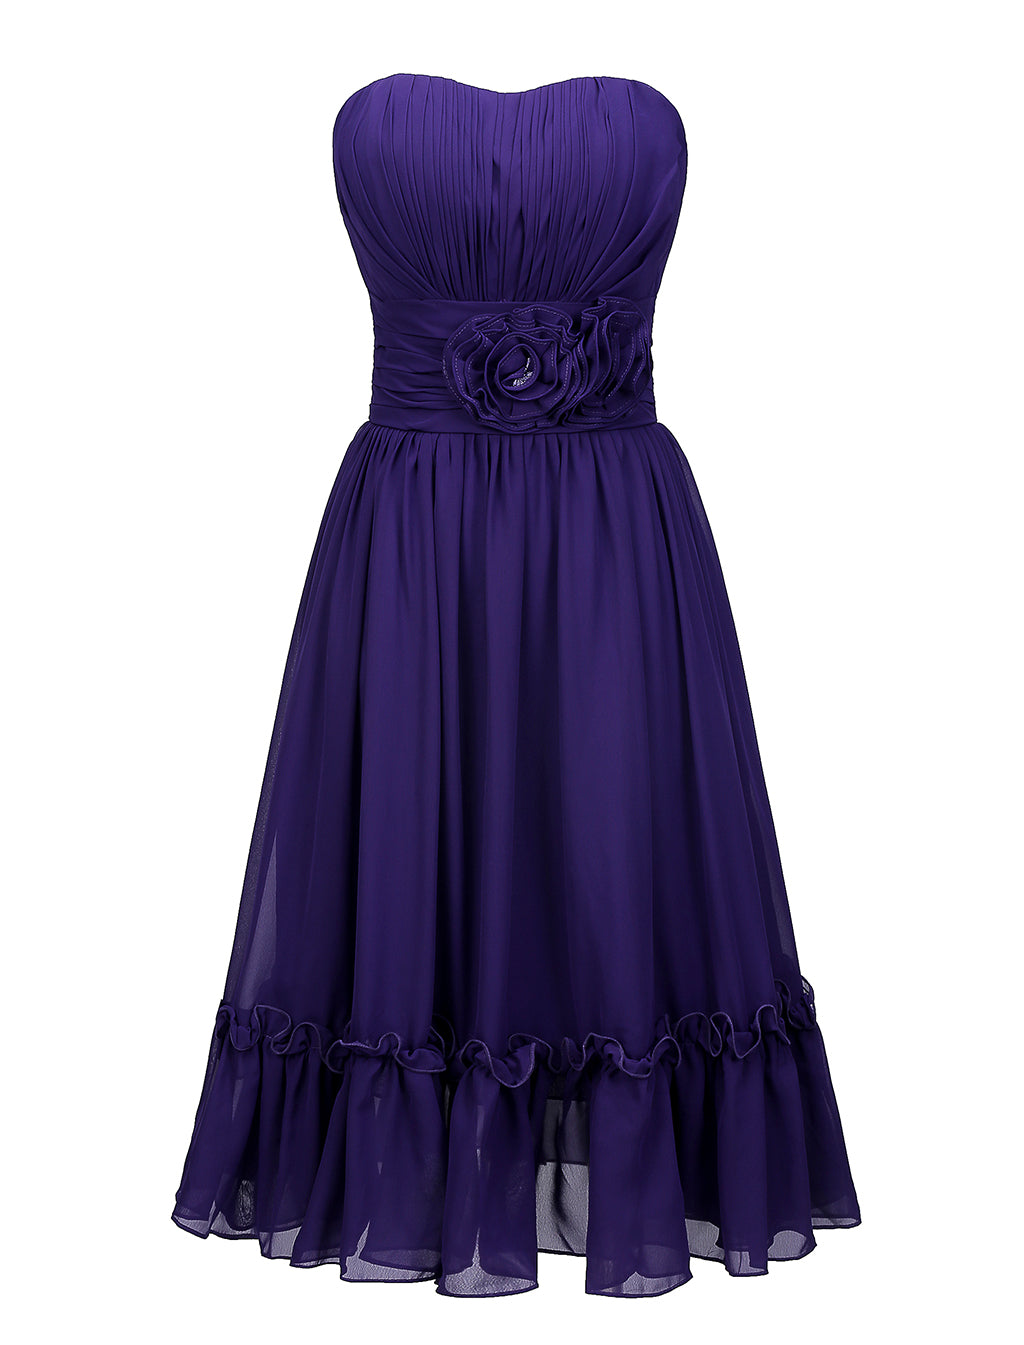 Knee Length Short Purple Chiffon Homecoming Dress Handmade Flower